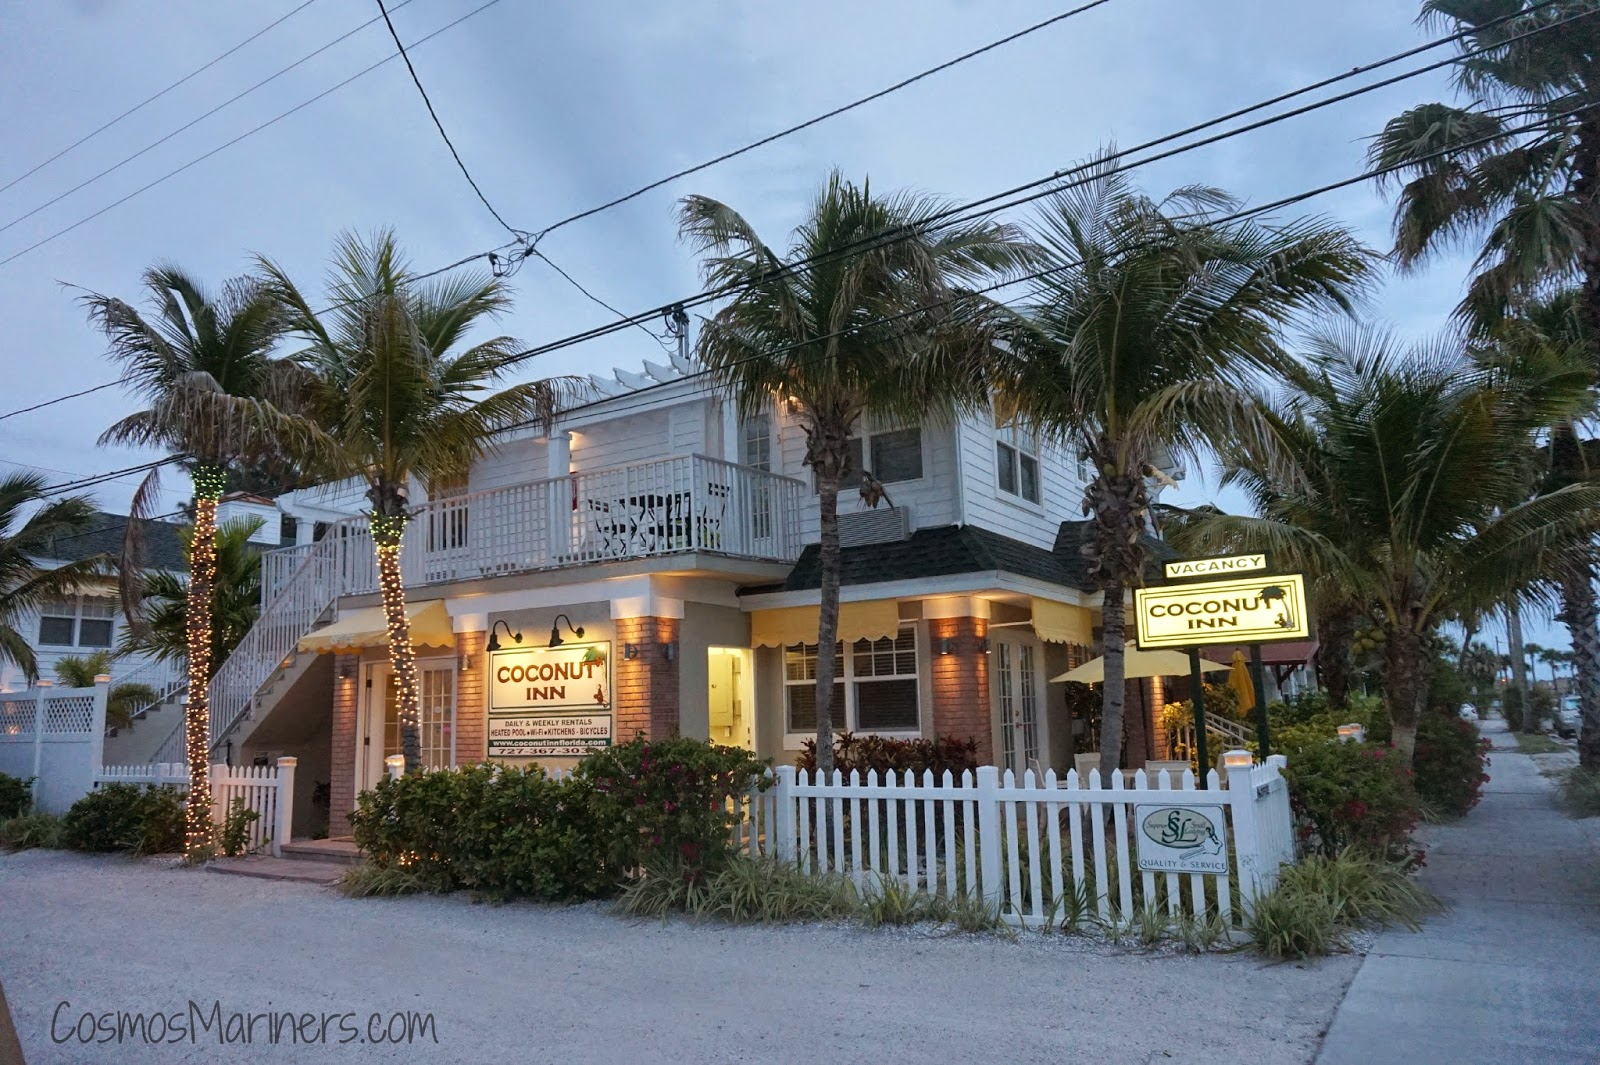 The Coconut Inn, Pass-a-Grille, Florida | CosmosMariners.com